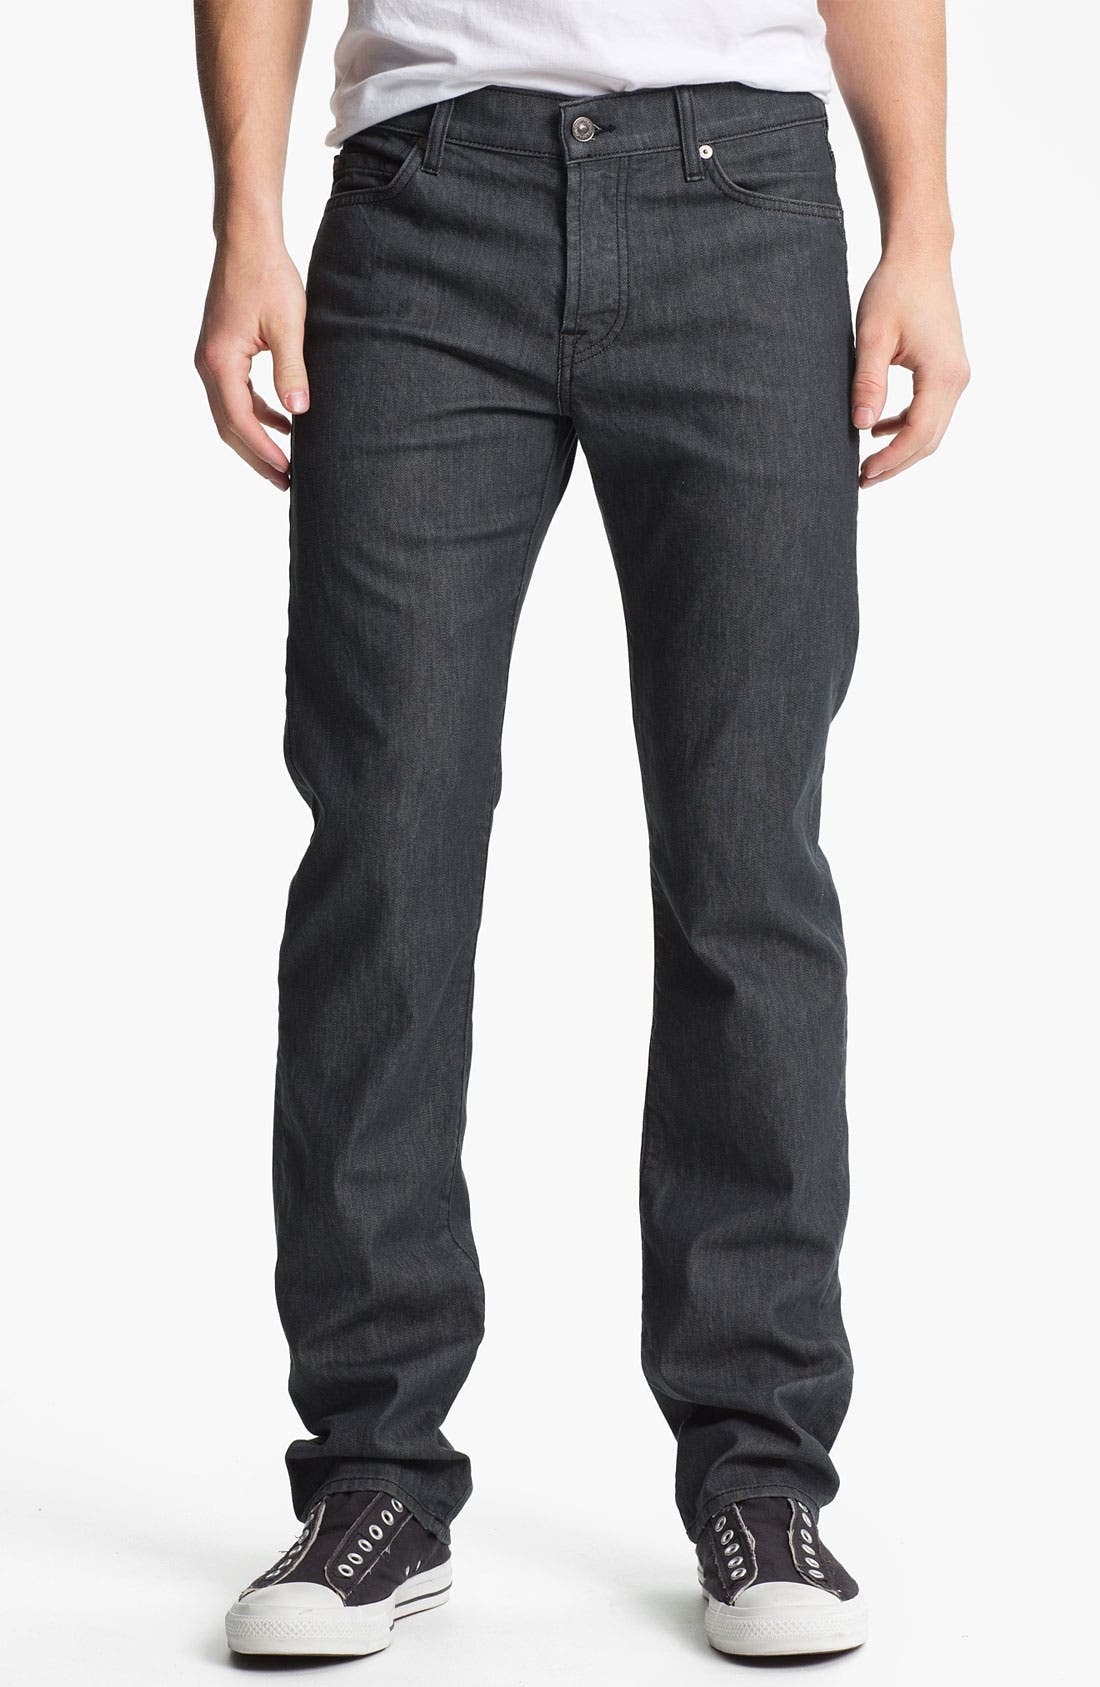 Main Image - 7 For All Mankind® 'Standard' Straight Leg Jeans (Clean Grey)